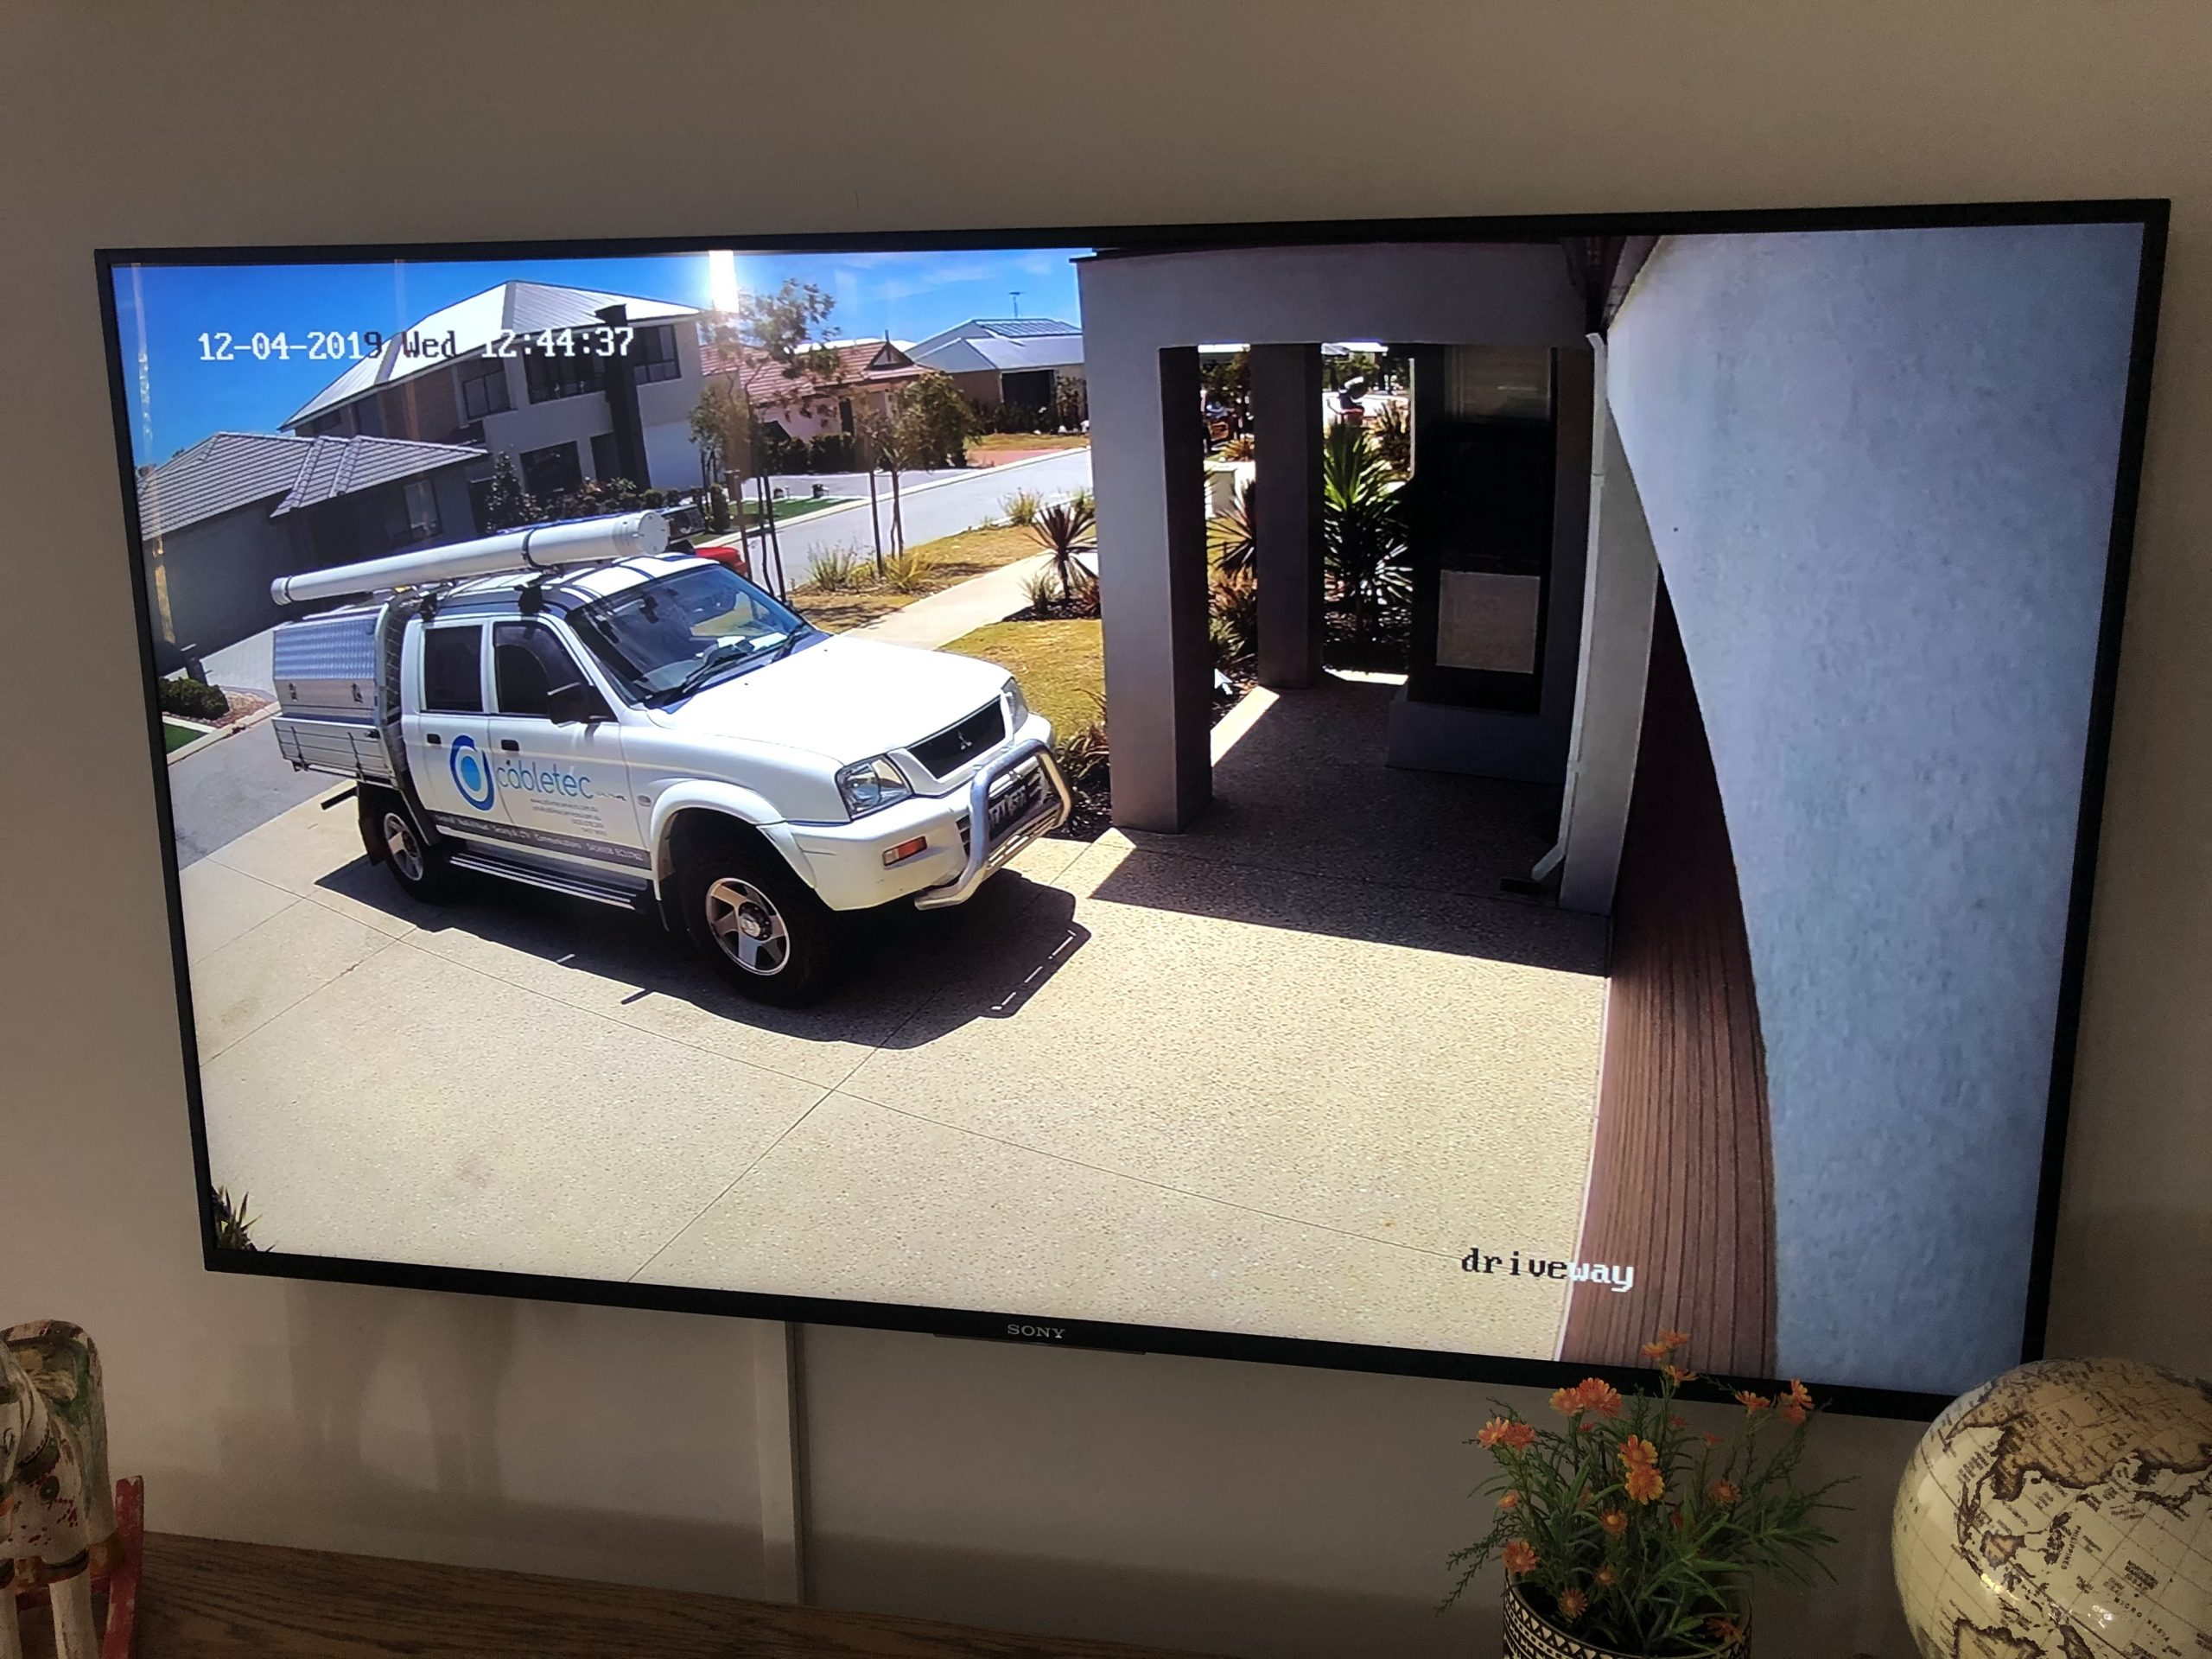 Cabletec's Van shown on customers TV through cameras